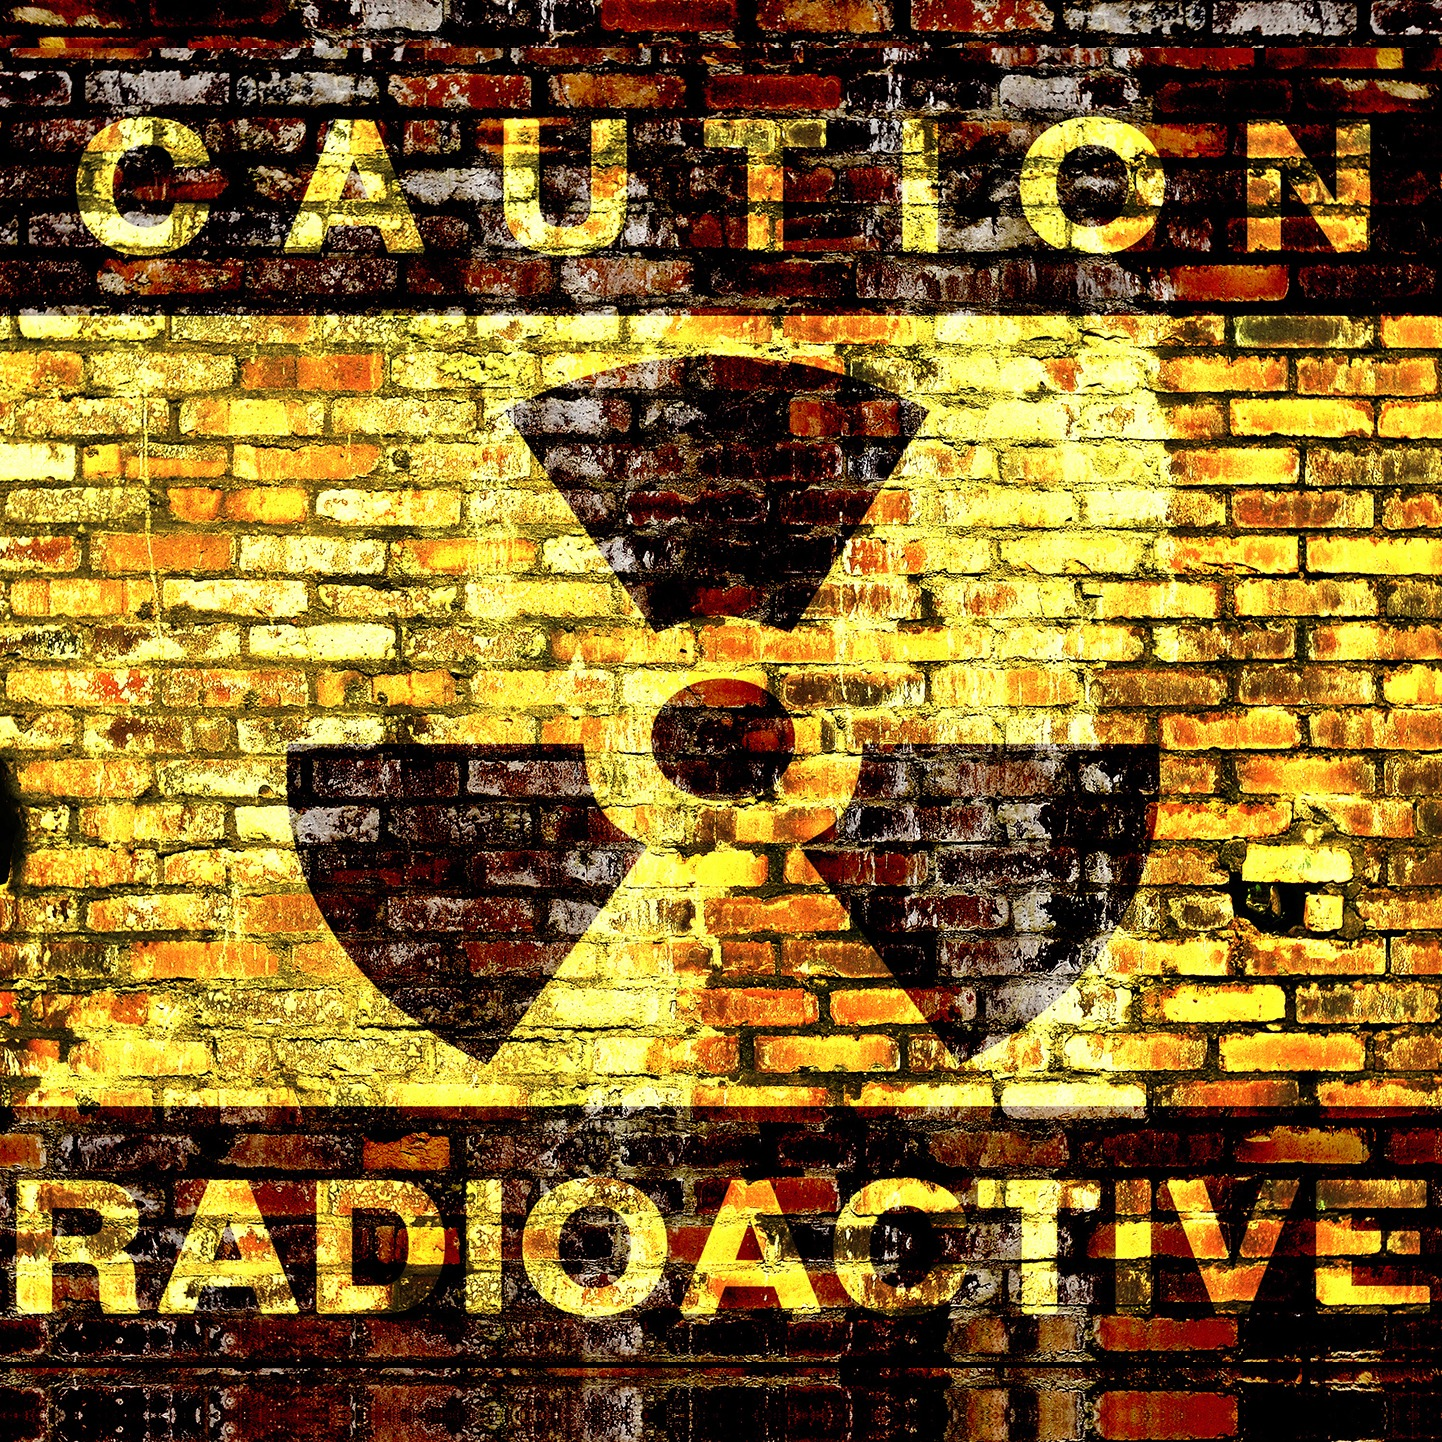 CAUTION - RADIOACTIVE SIGN PAINTED ON WALL